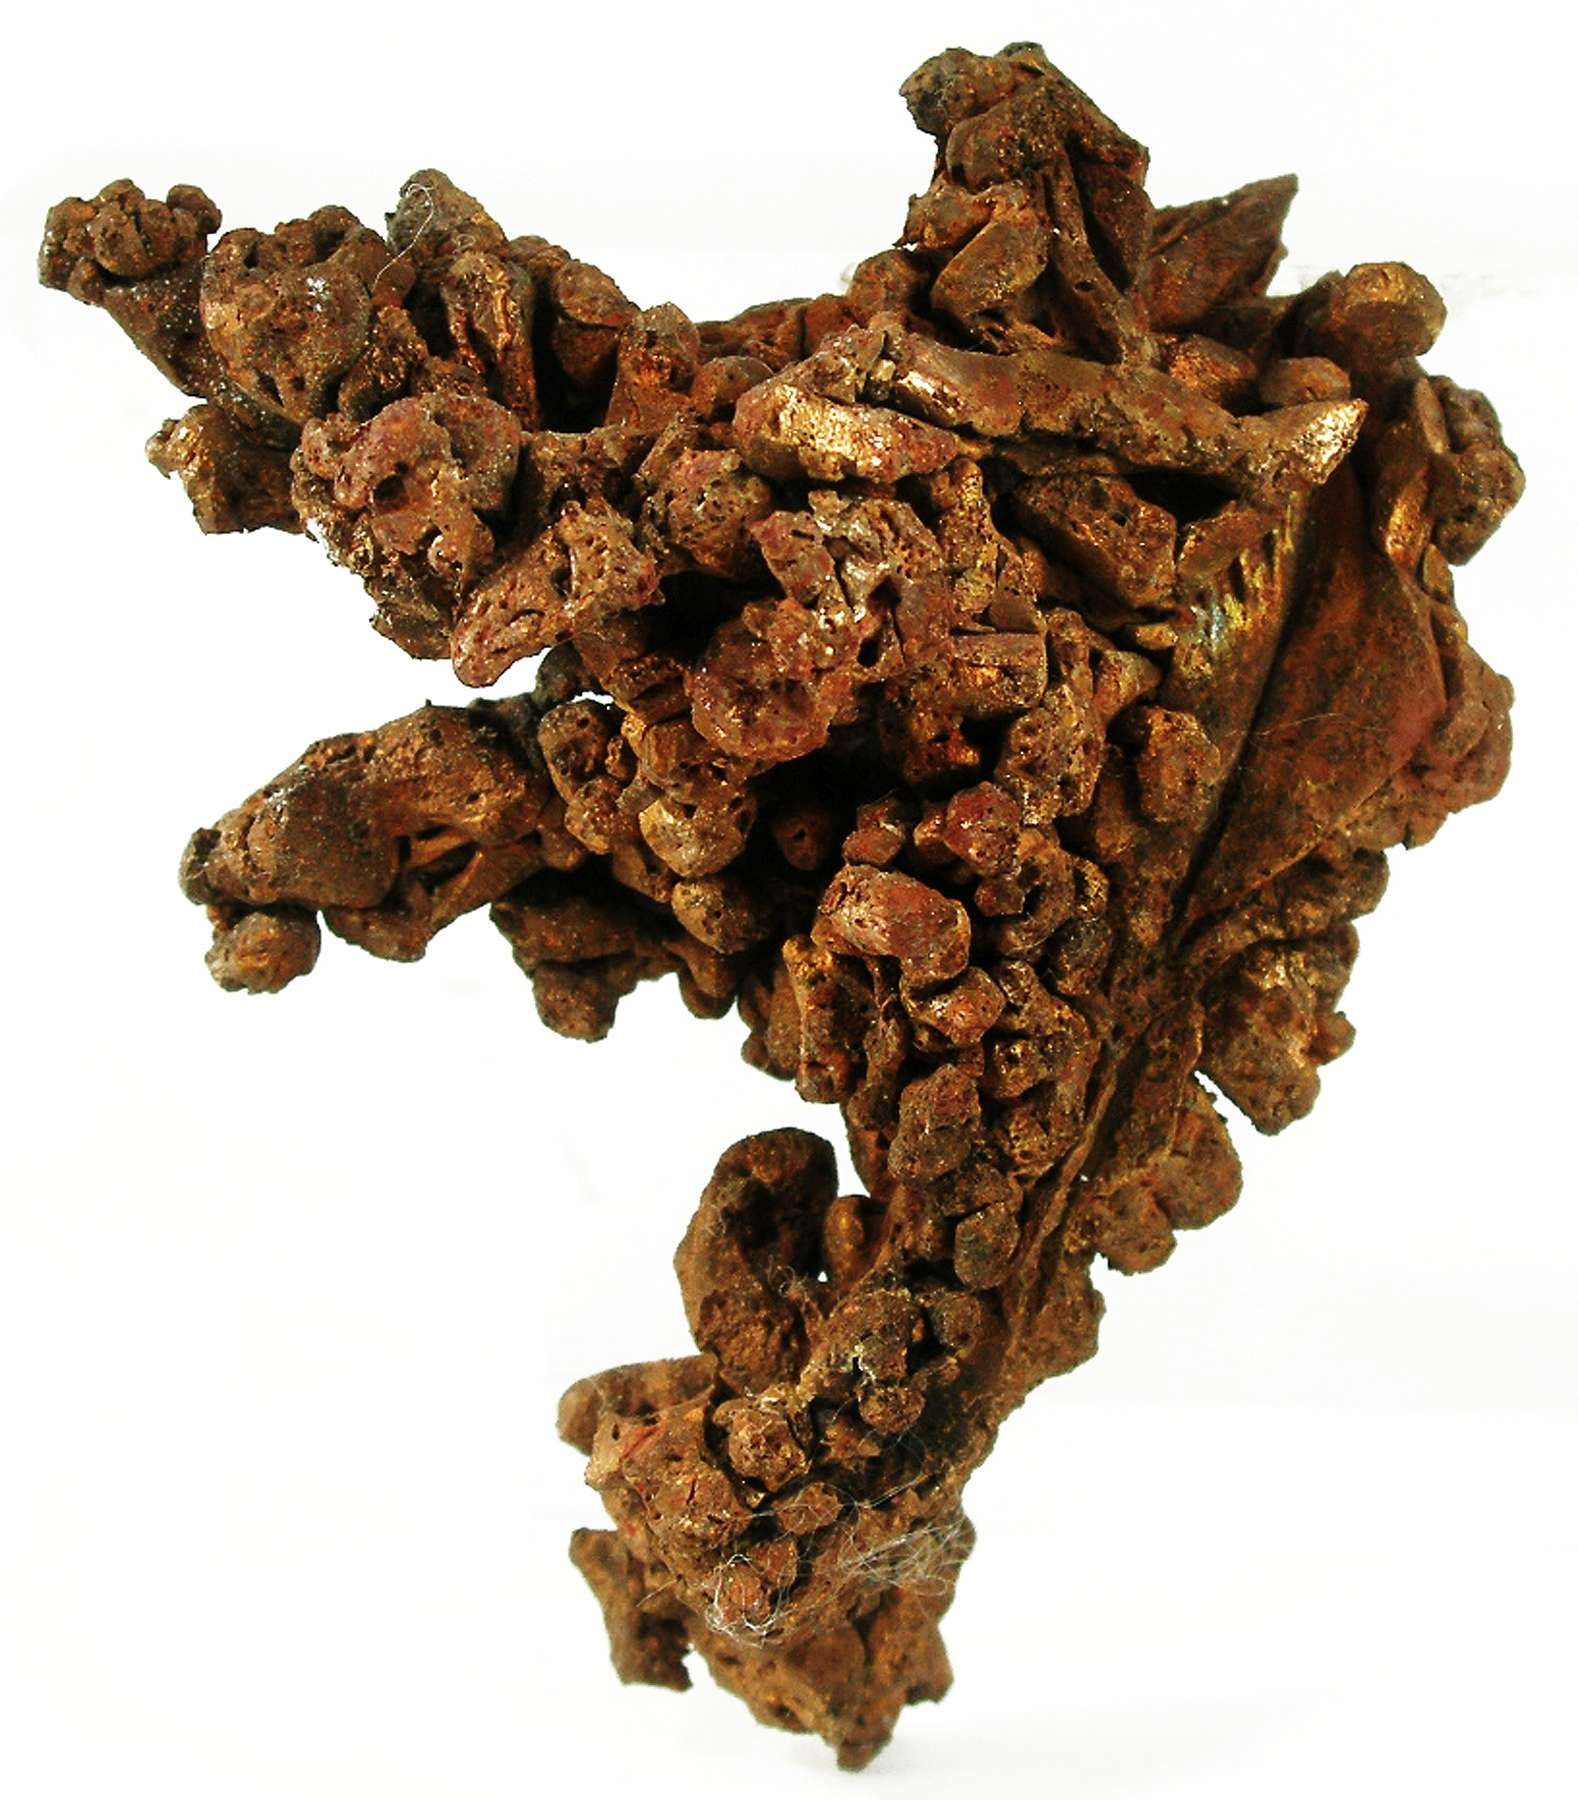 The highlight solid mass copper crystals 5 5 cm long doubly terminated